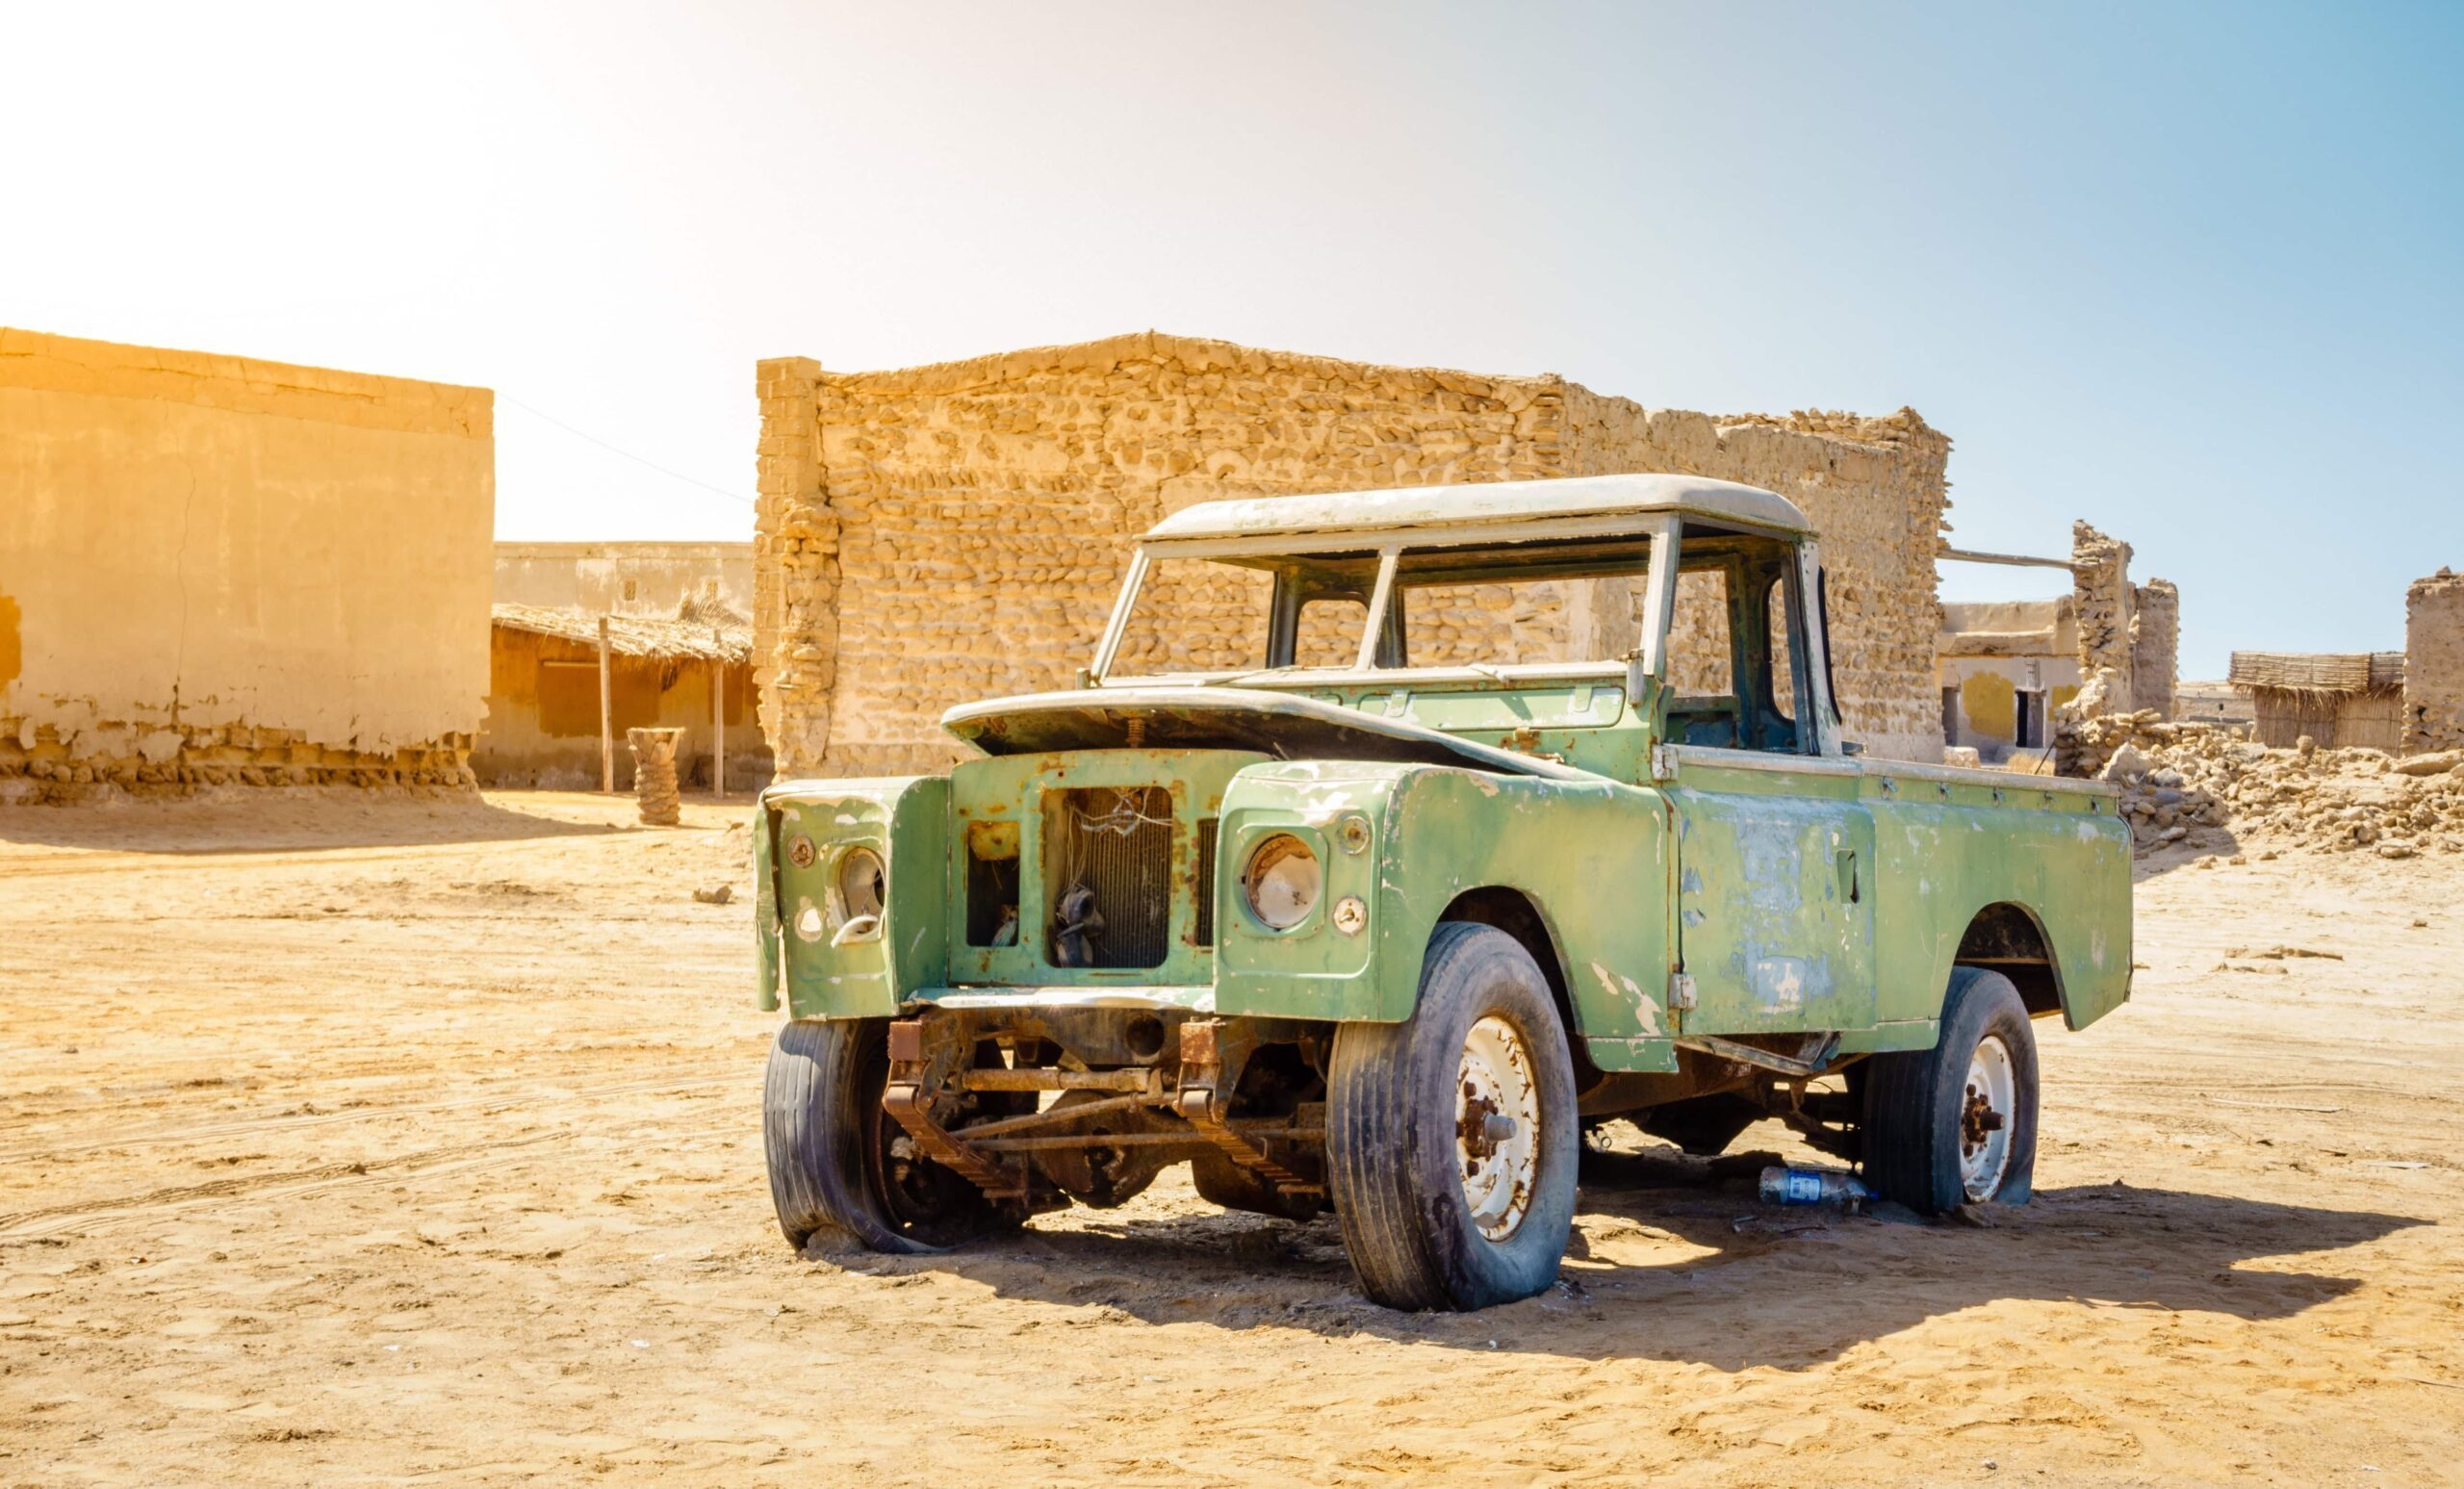 Picture of Jazirat al hamra with old car